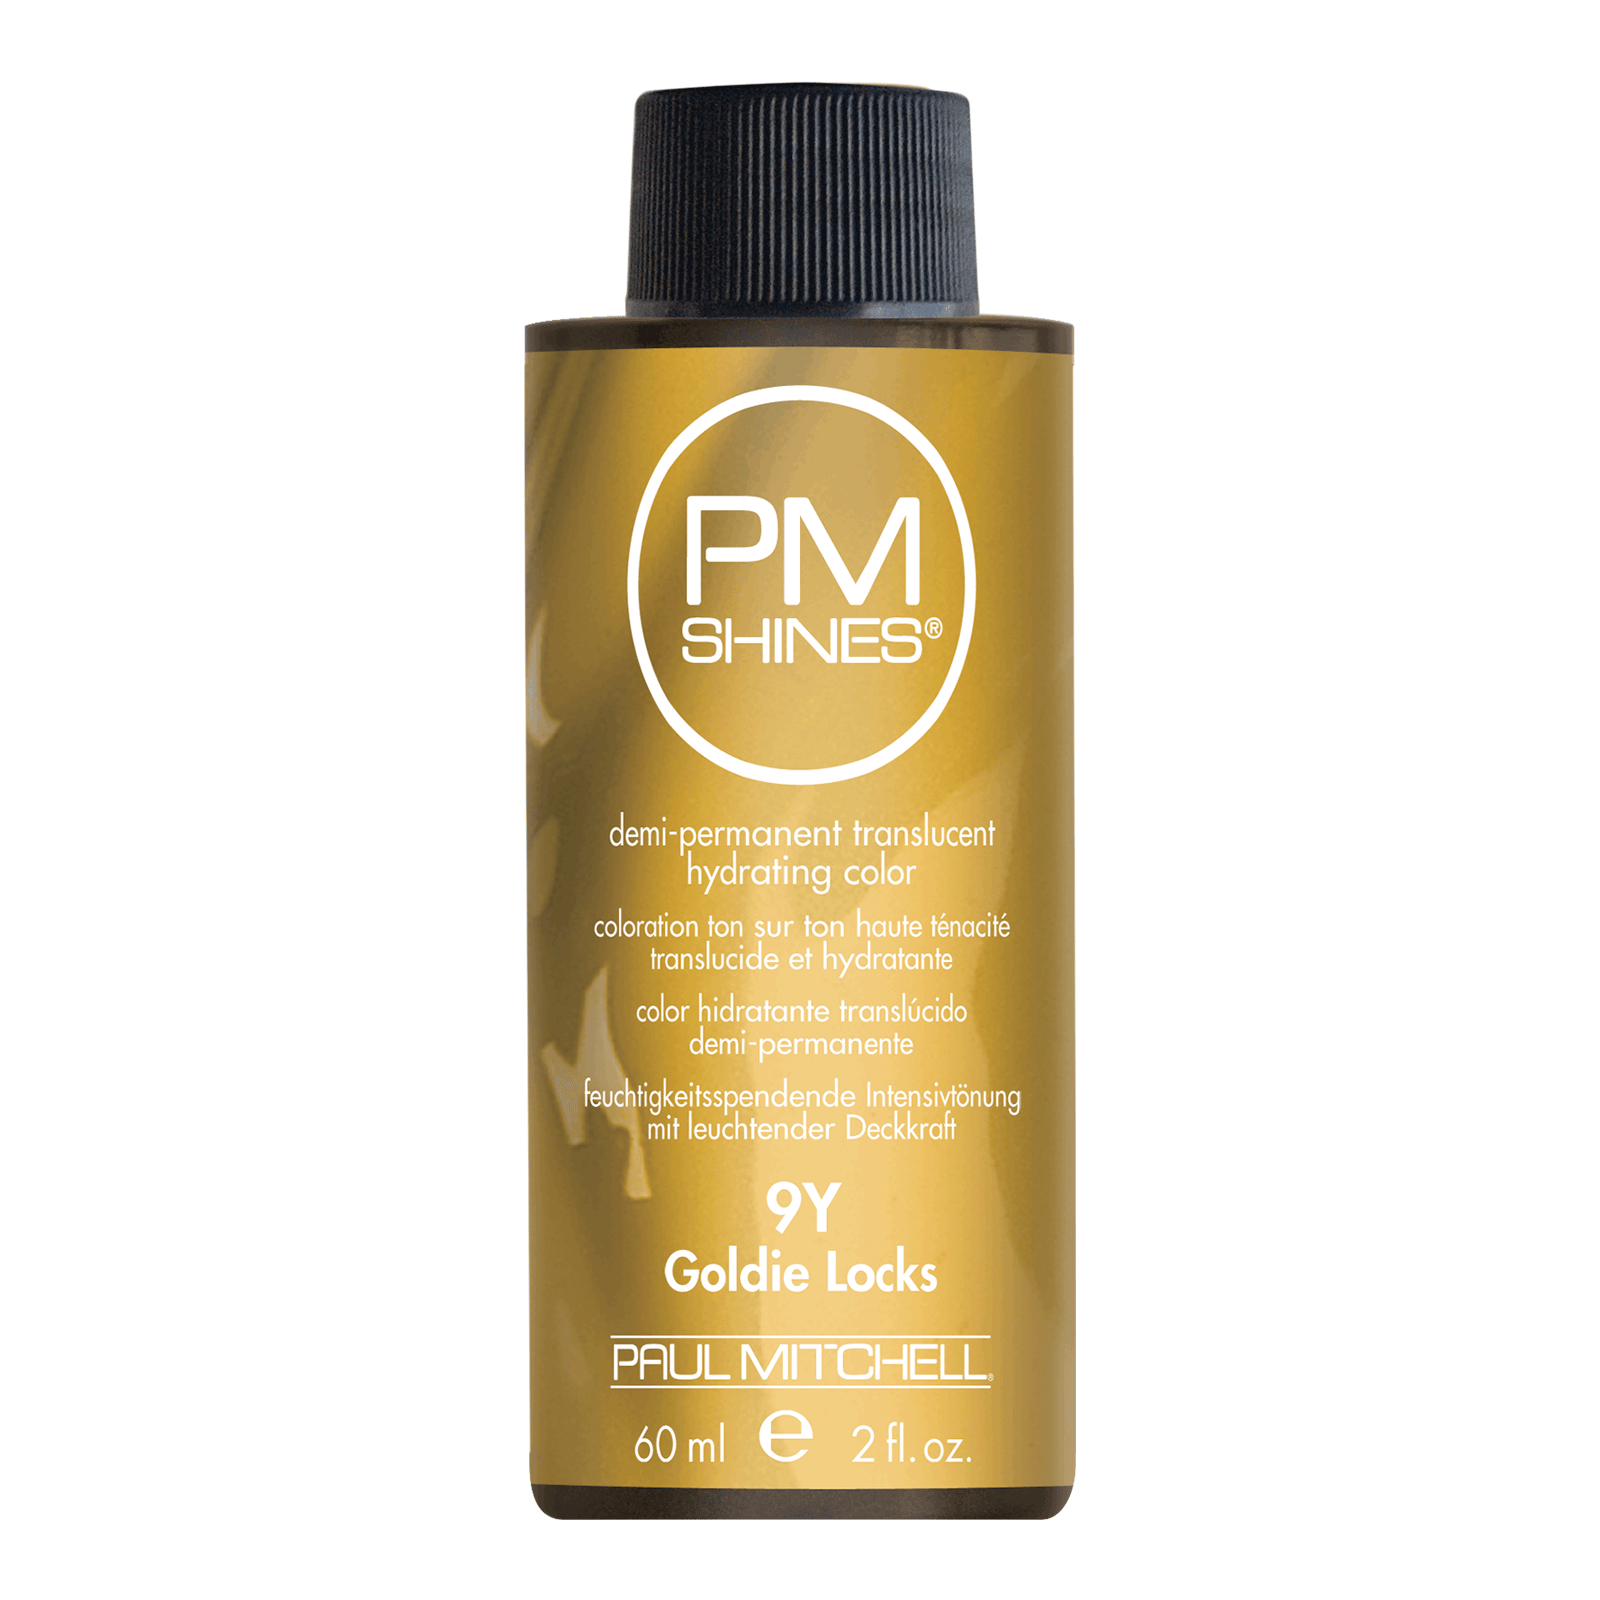 PM Shines - Demi Permanent Hair Color